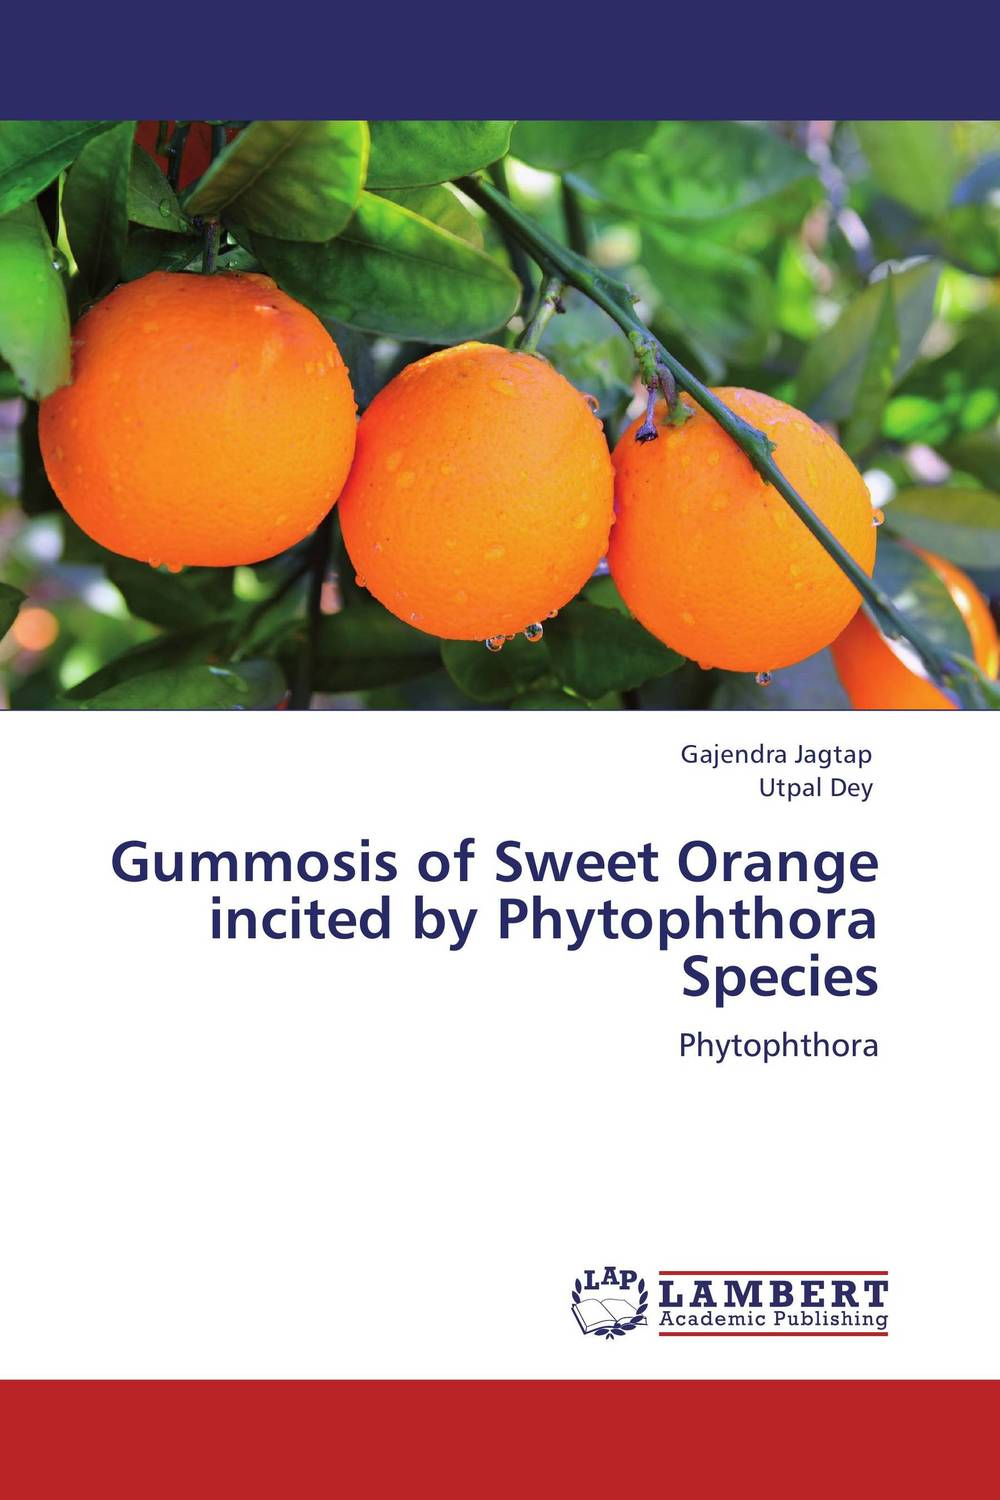 Gummosis of Sweet Orange incited by Phytophthora Species found in brooklyn